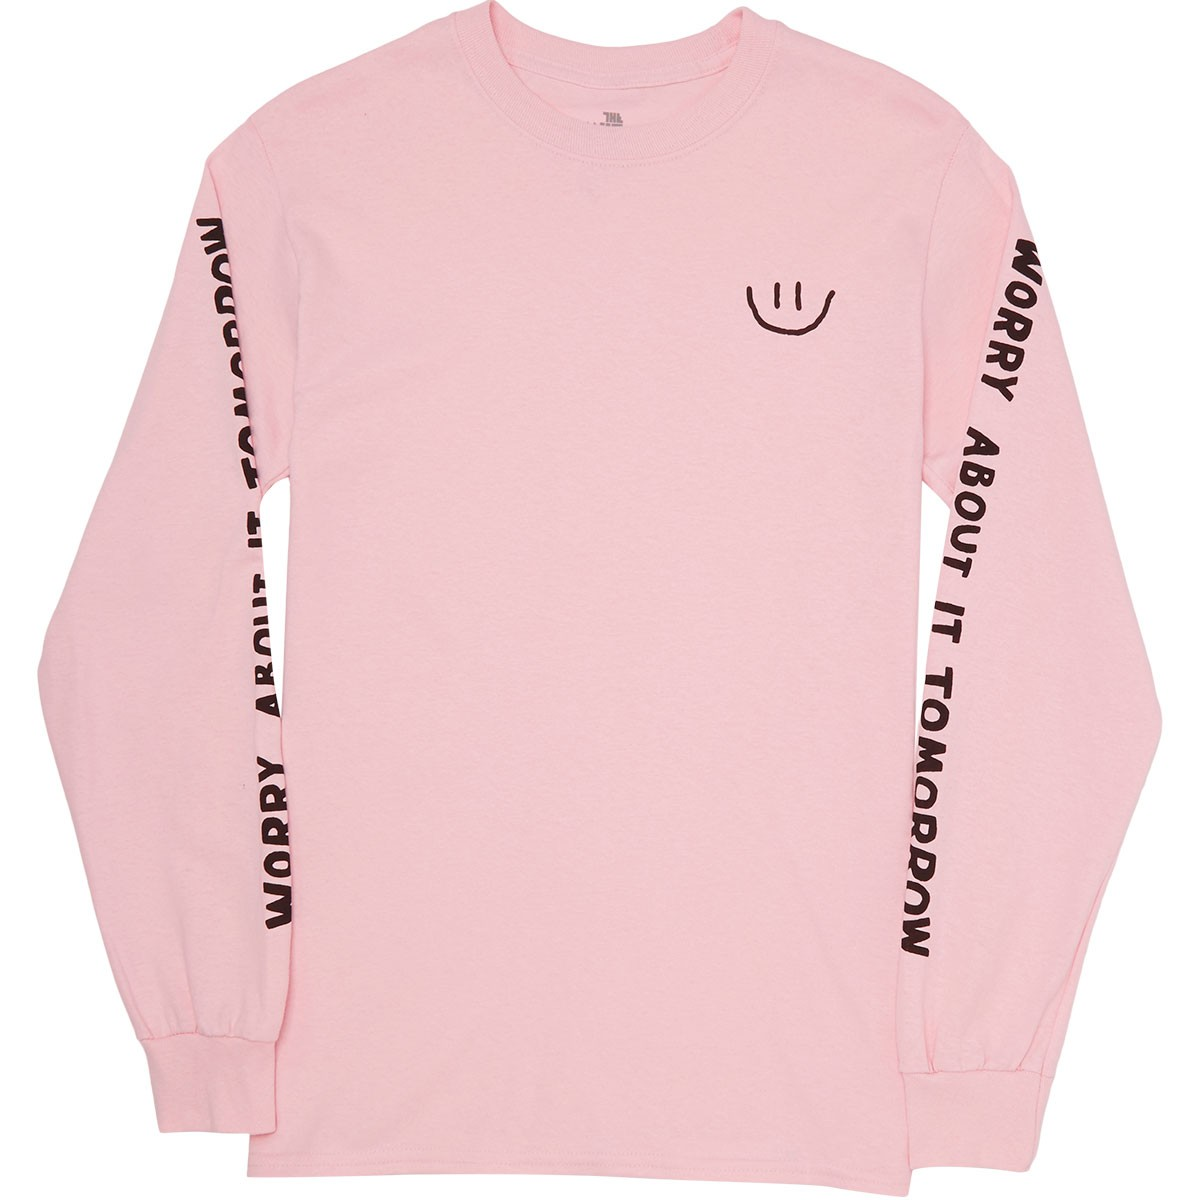 Quiet Life Worry Long Sleeve T-Shirt - Pink